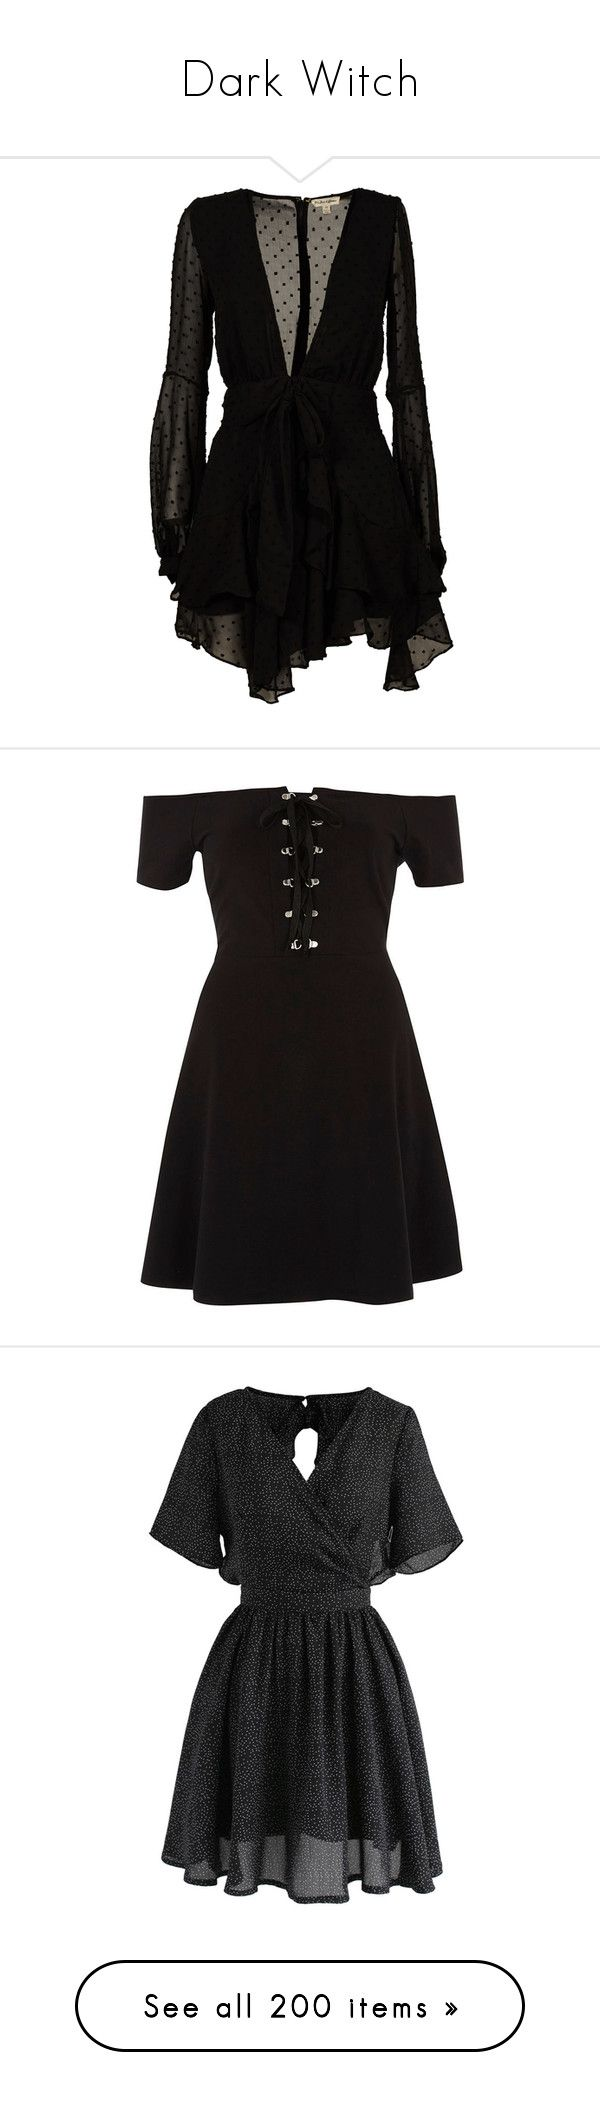 """""""Dark Witch"""" by yourlocalwitch ❤ liked on Polyvore featuring dresses, black, womenclothingdresses, long sleeve short dress, long sleeve button dress, button dress, long sleeve polka dot dress, long sleeve day dresses, skater dresses and women"""